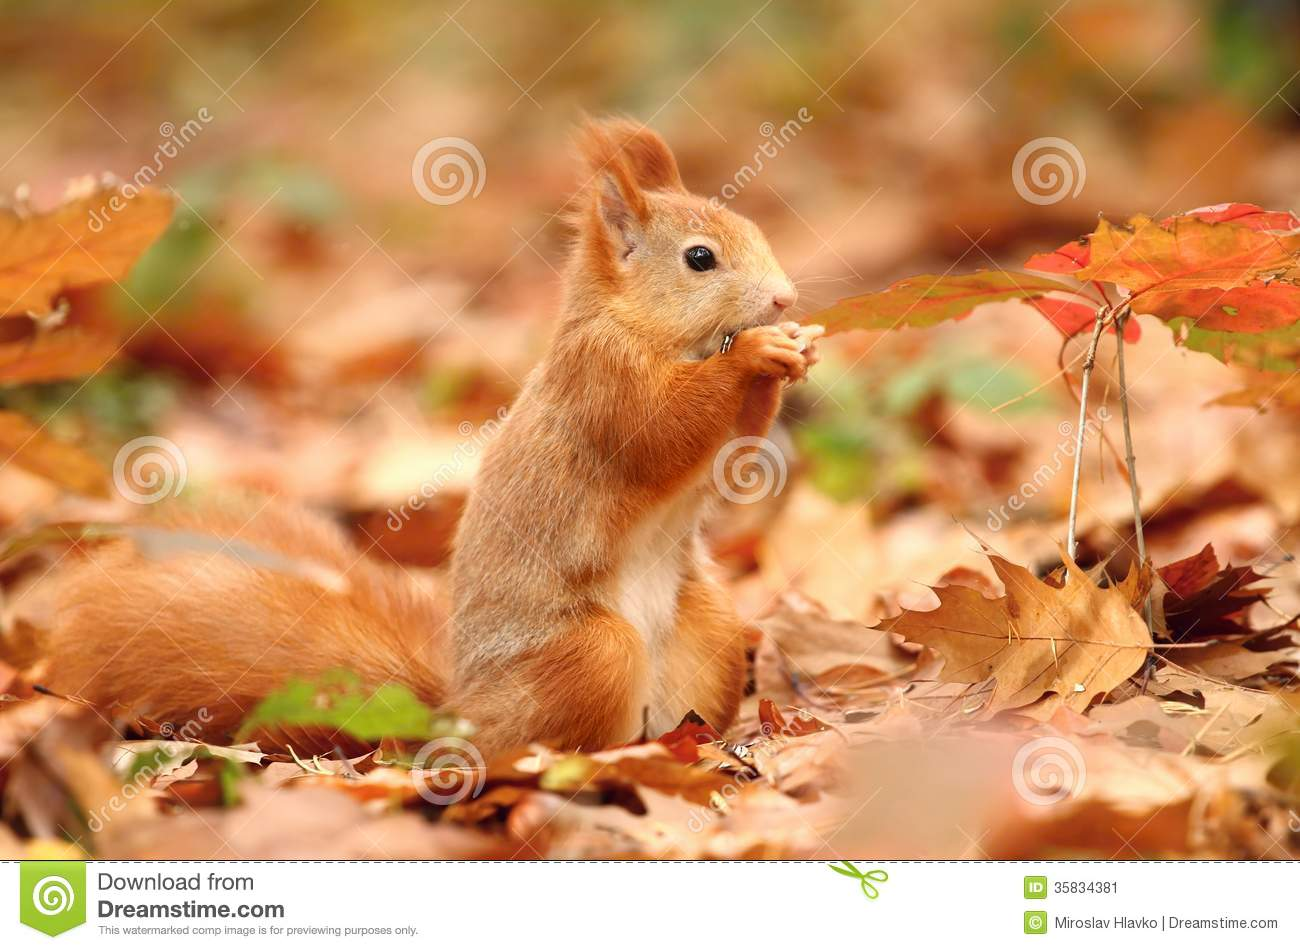 squirrel in leaves stock image image of cute wild